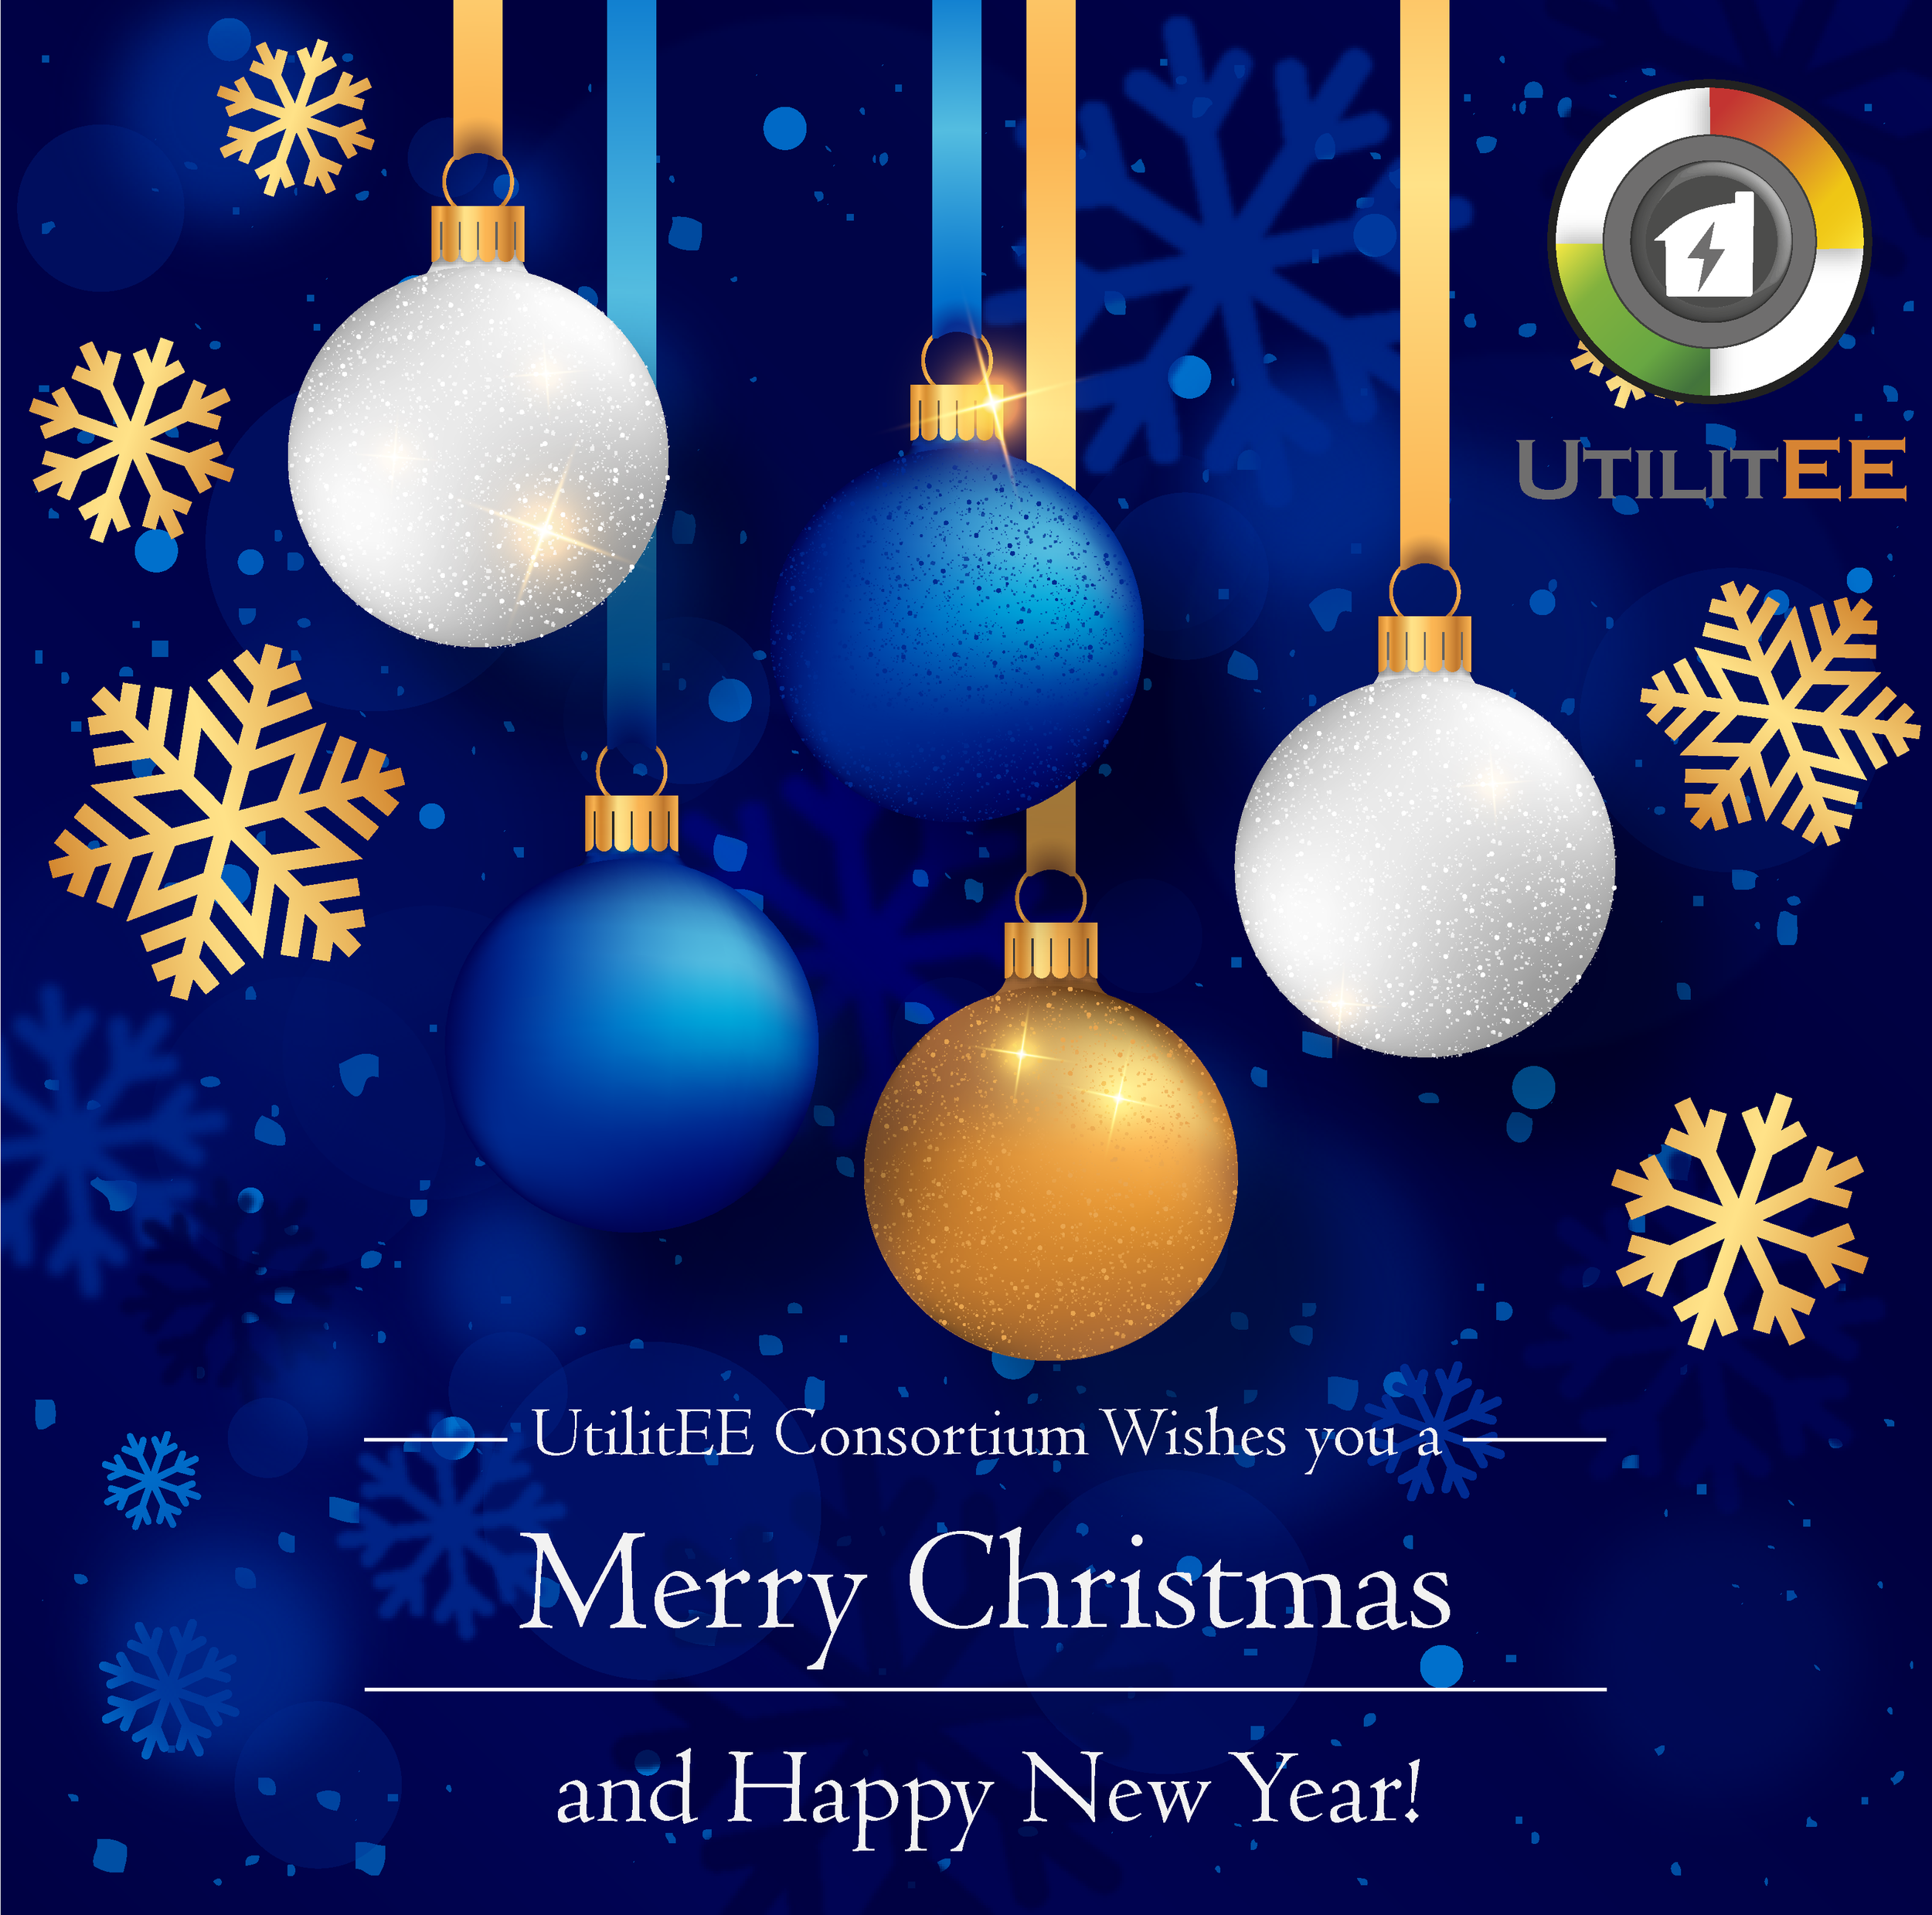 Holiday greetings from UtilitEE_2018@4x.png